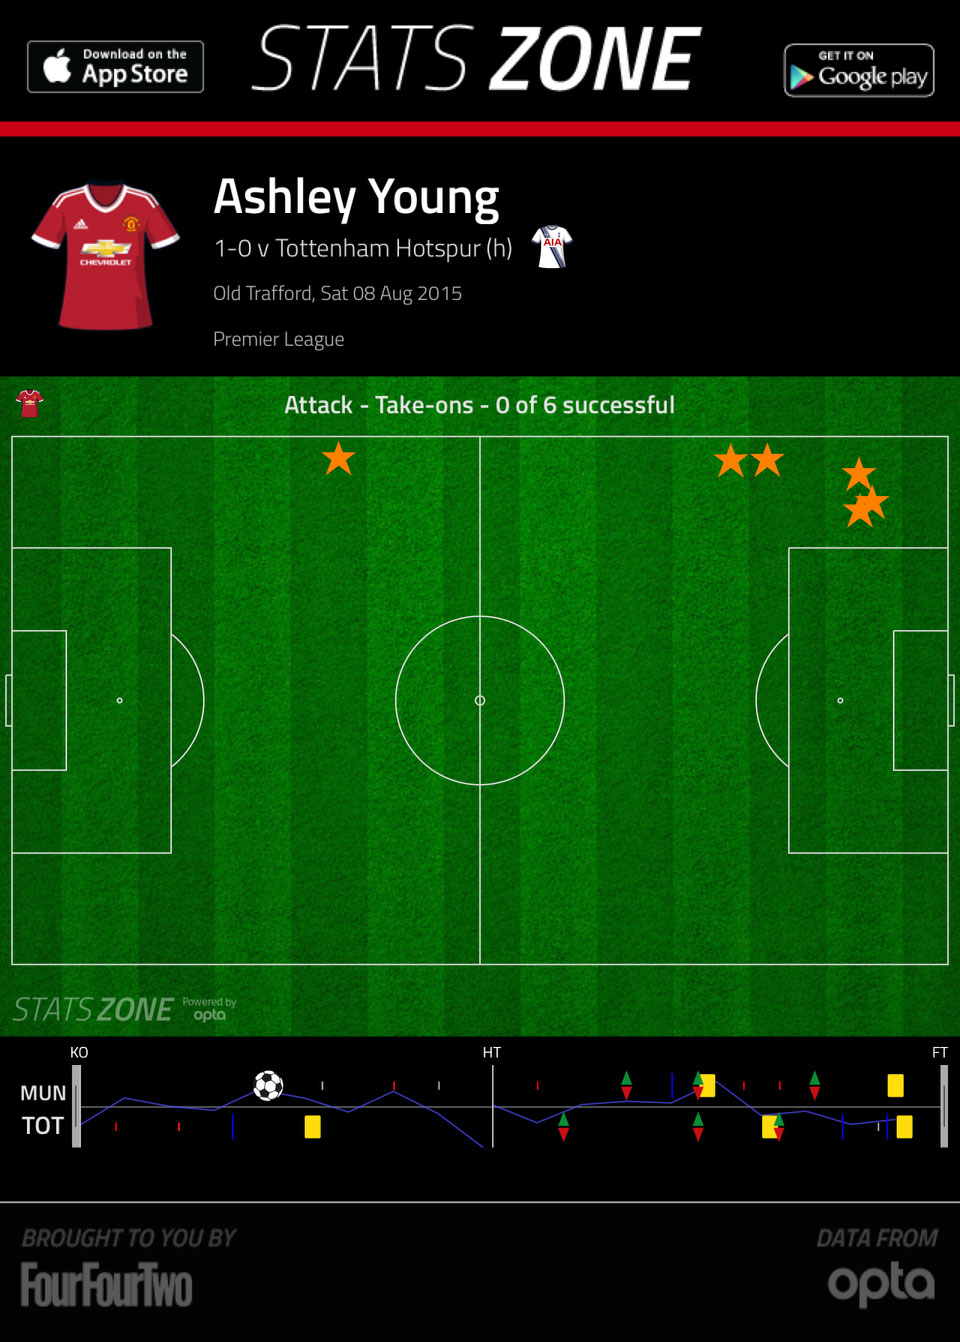 ashley-young-take-ons